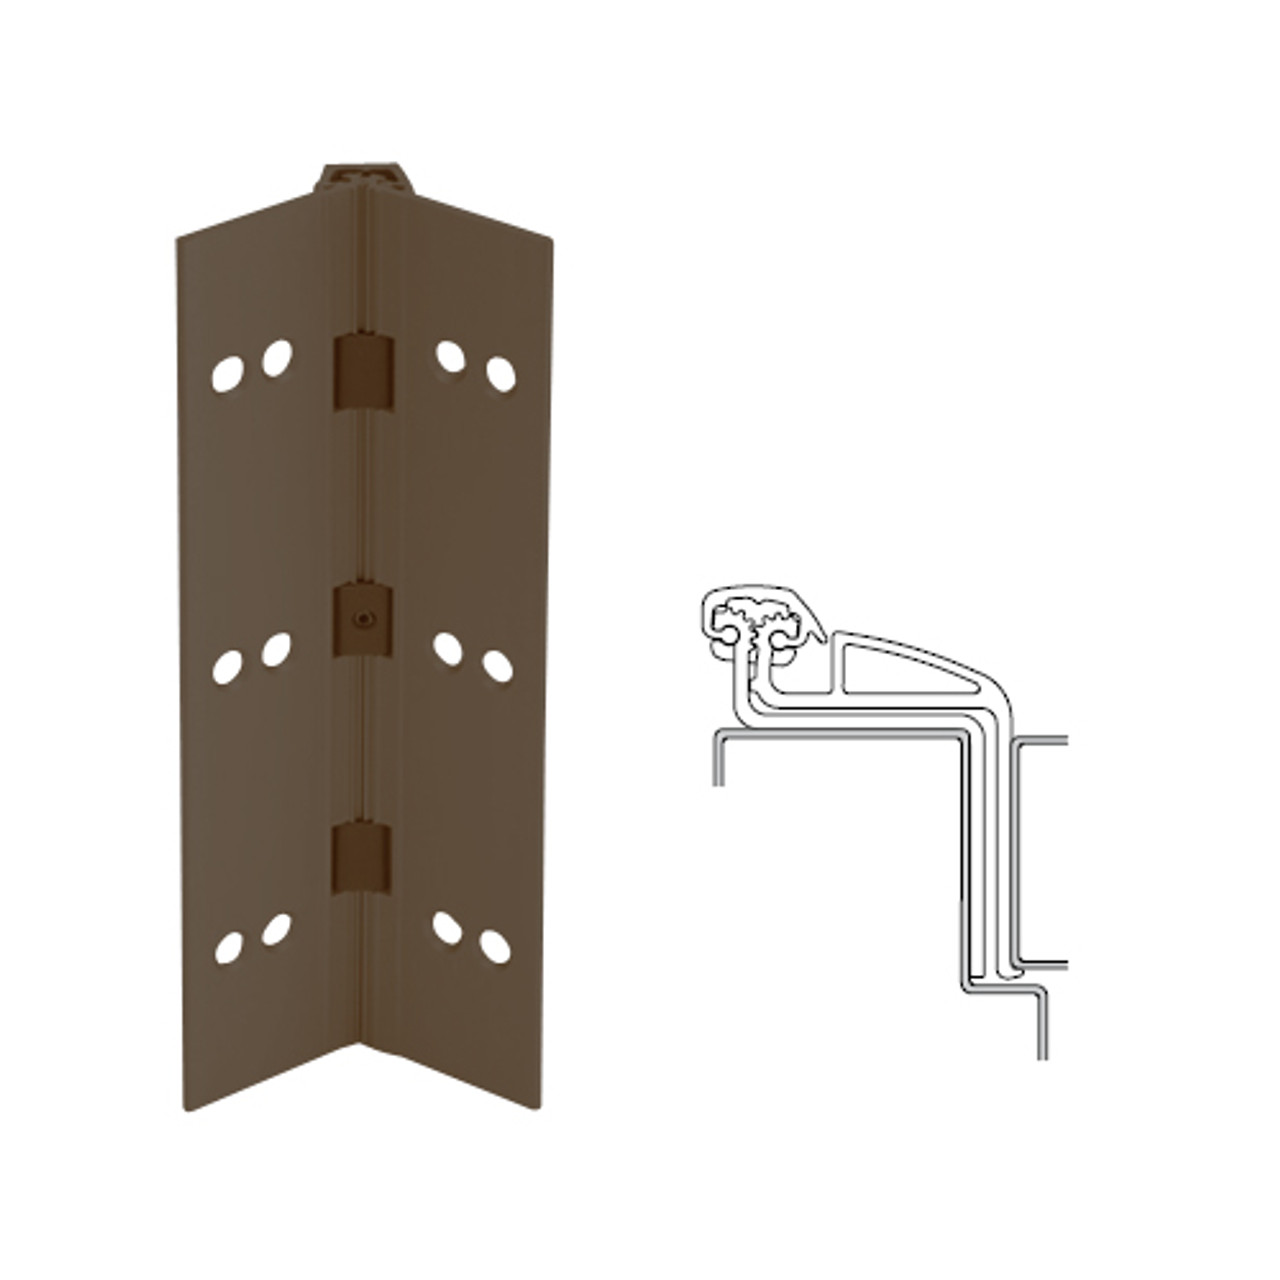 041XY-313AN-95 IVES Full Mortise Continuous Geared Hinges in Dark Bronze Anodized